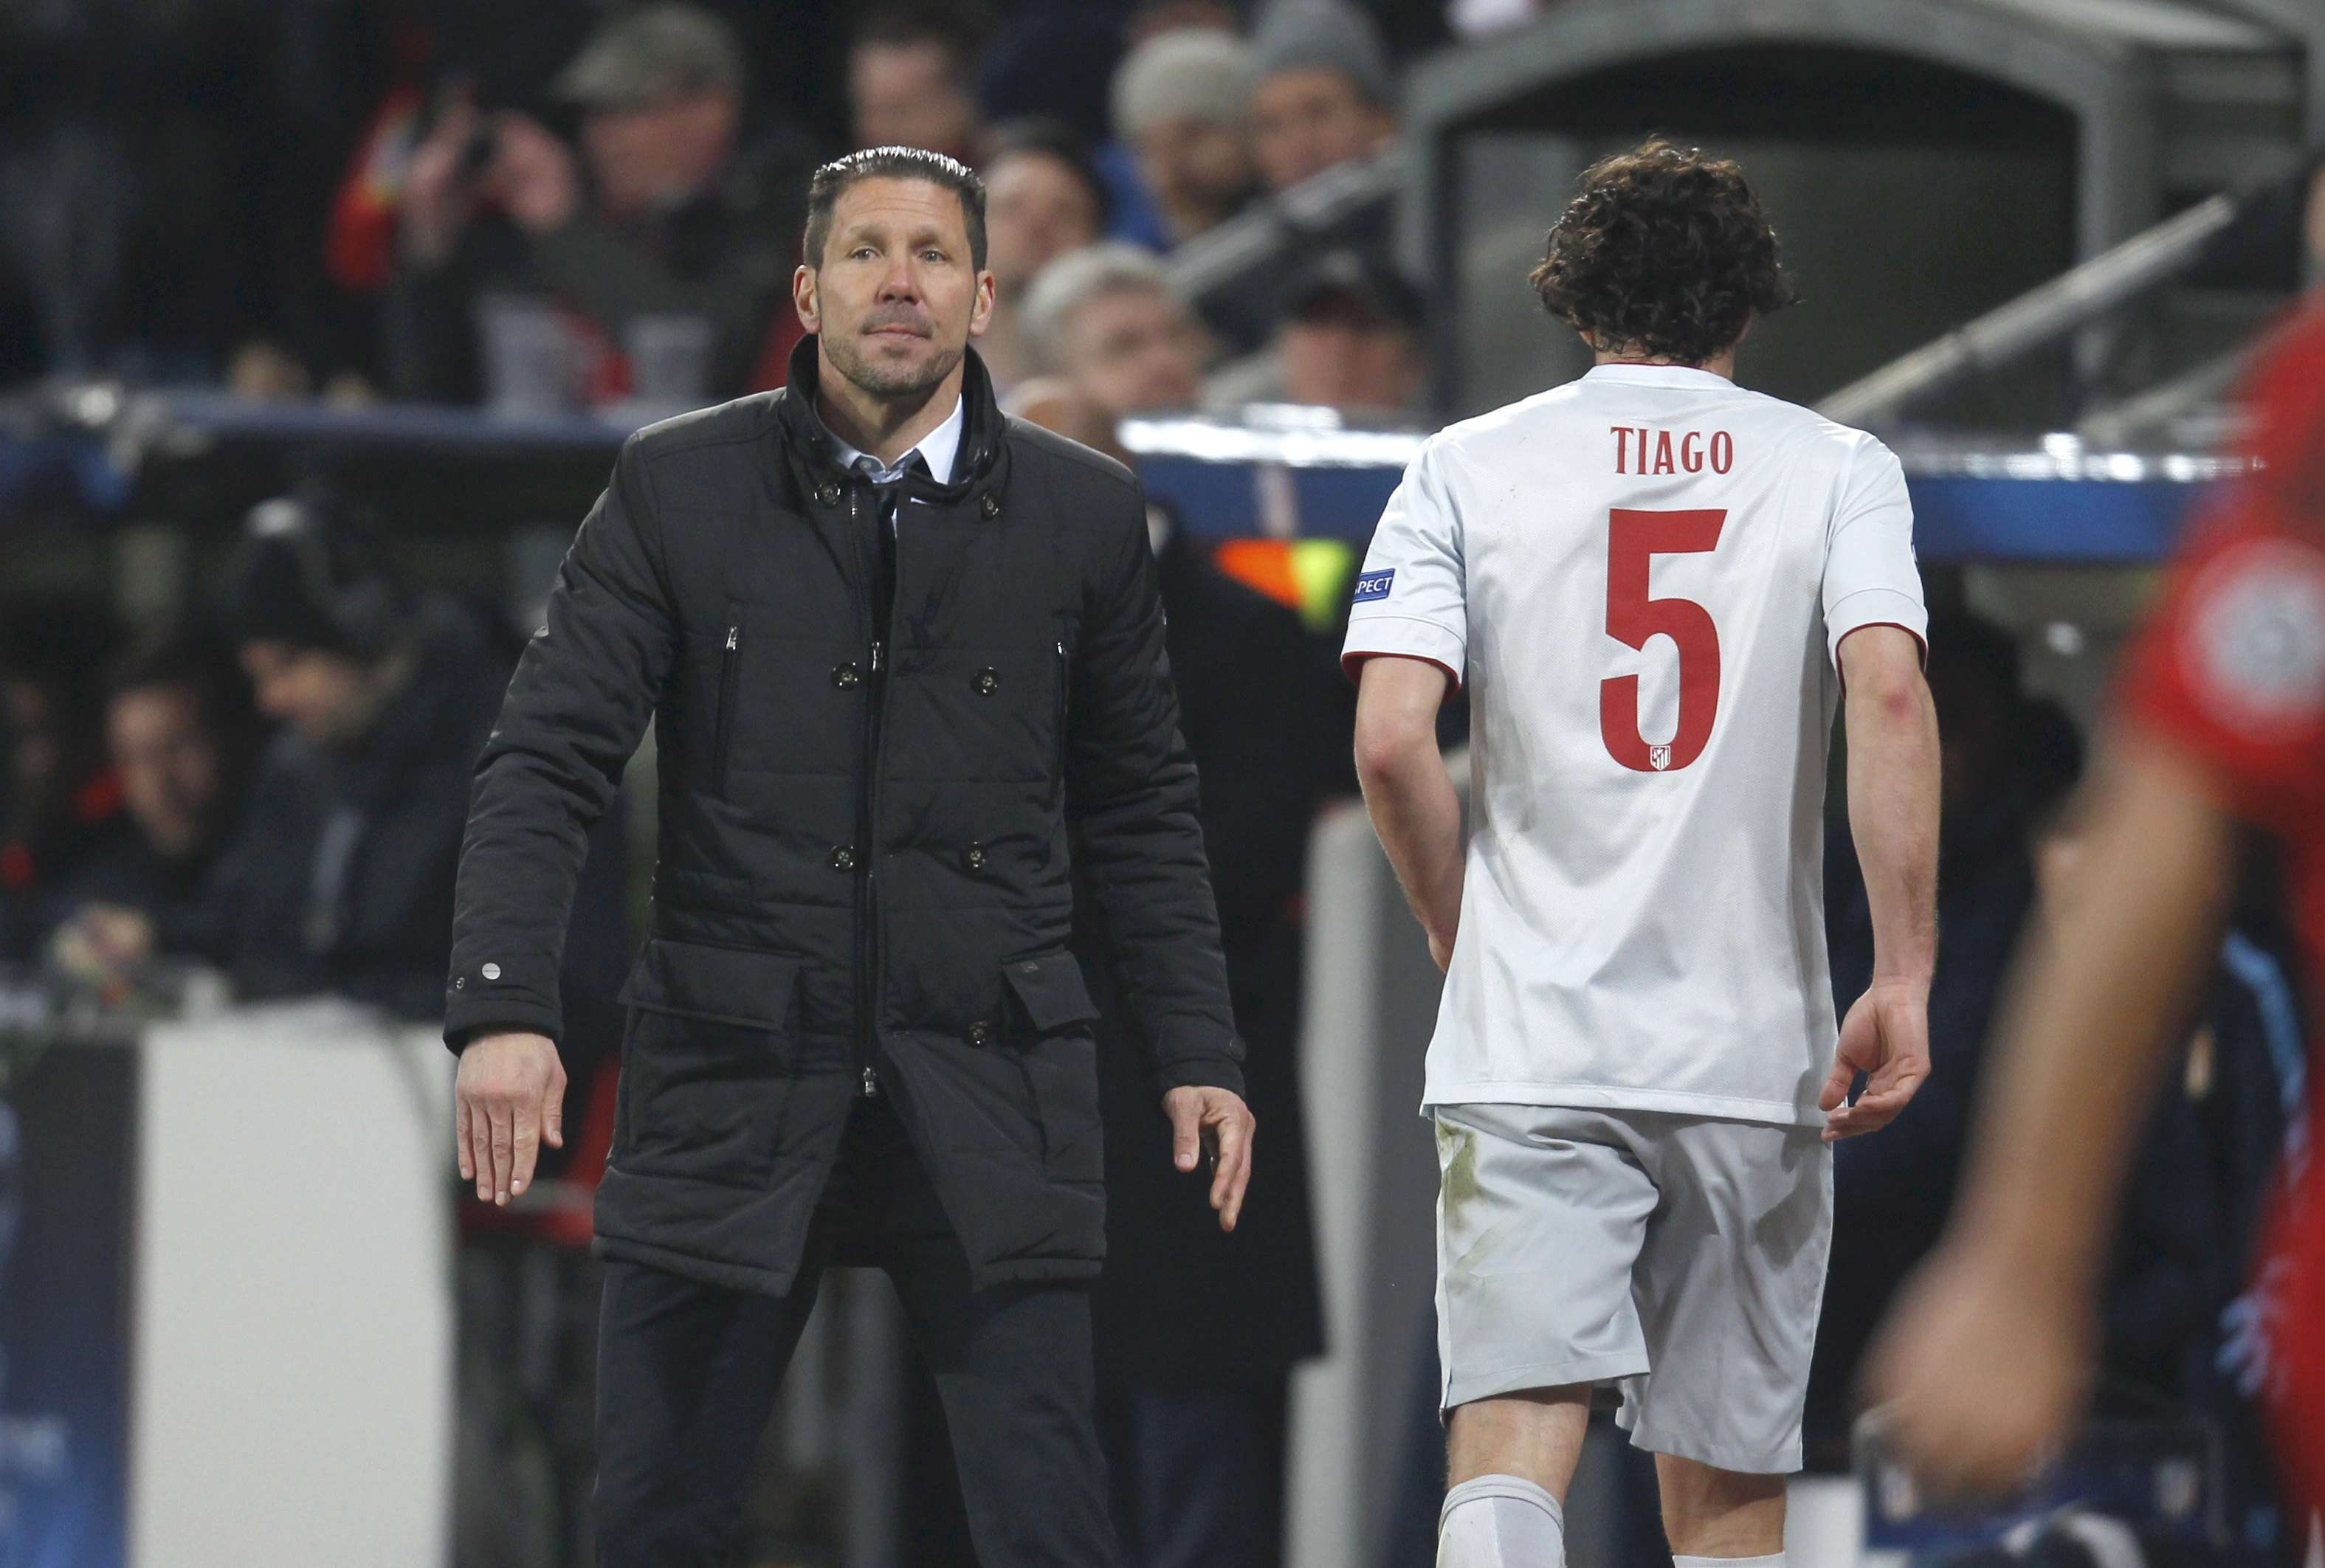 Atletico Madrid's Tiago Mendes walks past his coach Diego Simeone (L) after receiving a red card during the Champions League round of 16, first leg soccer match against Bayer Leverkusen, in Leverkusen February 25, 2015. REUTERS/Ina Fassbender (GERMANY - Tags: SPORT SOCCER) Foto: INA FASSBENDER/REUTERS